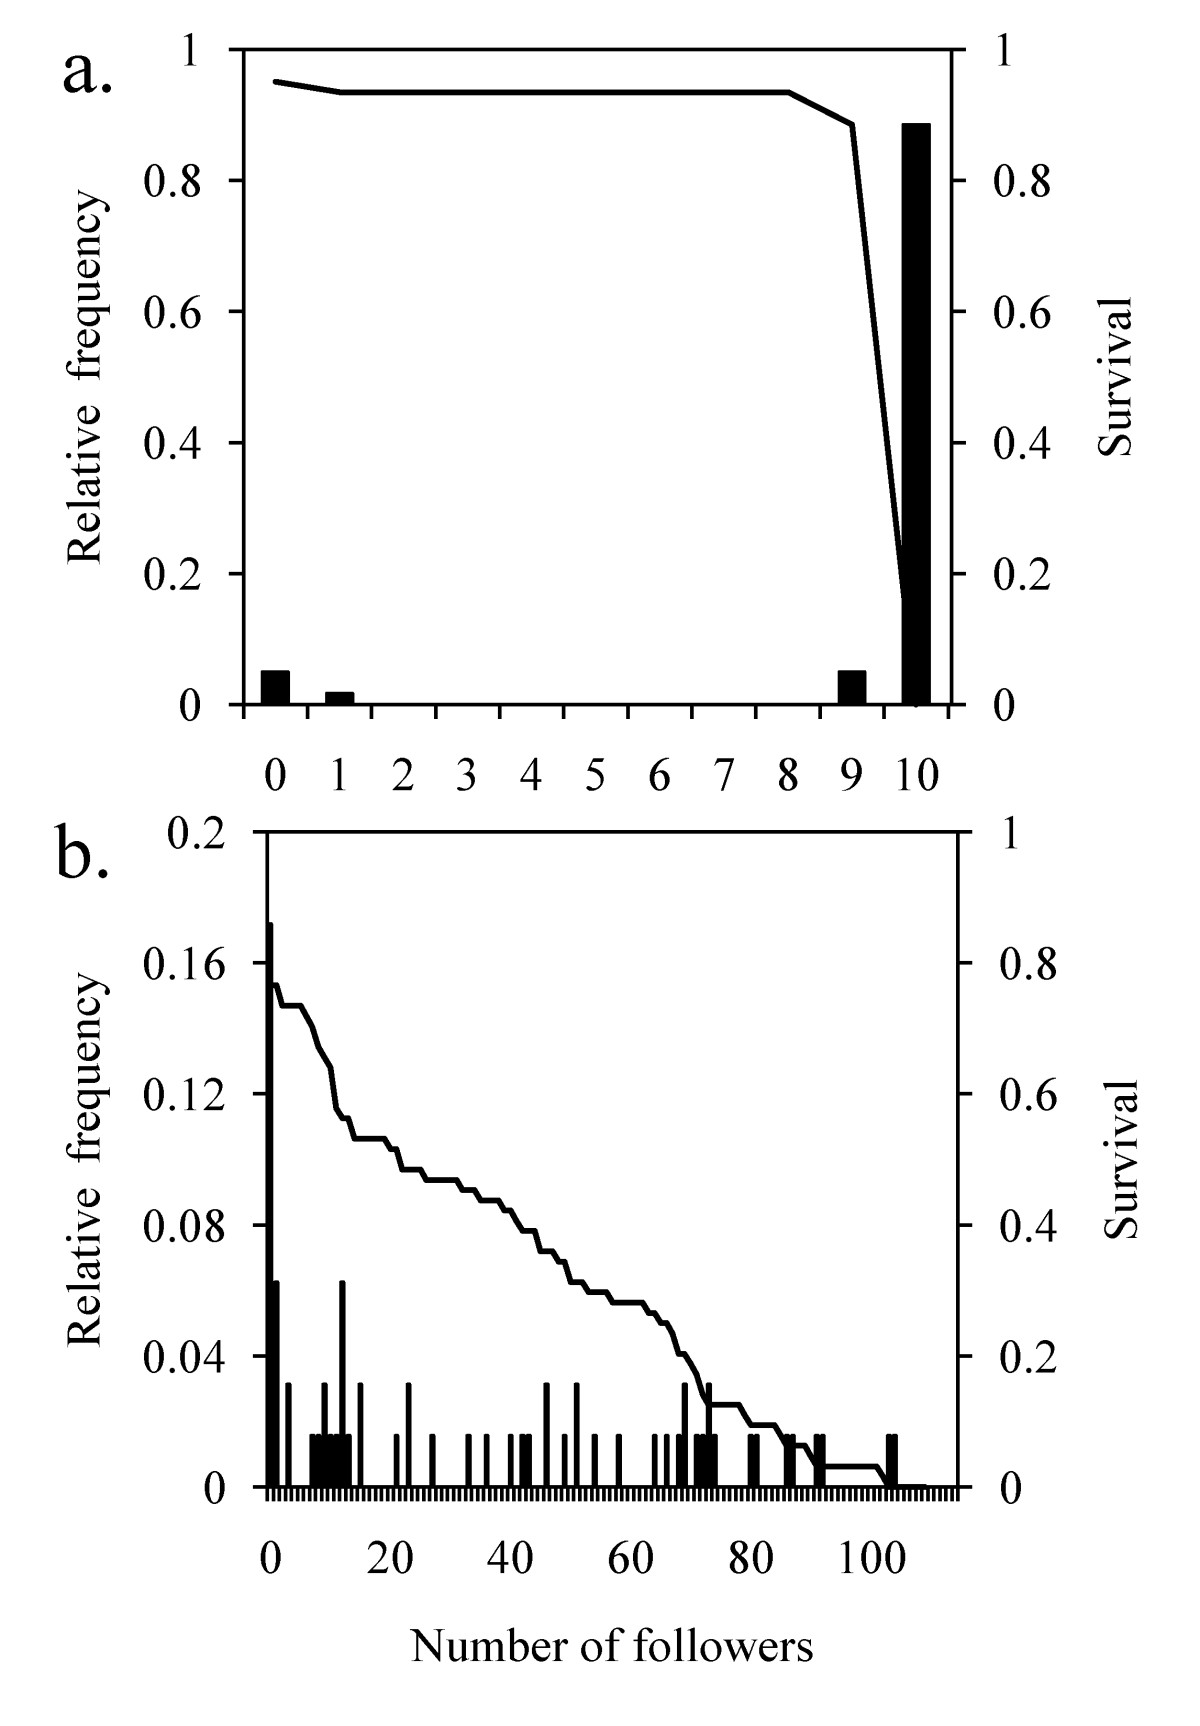 http://static-content.springer.com/image/art%3A10.1186%2F1472-6785-11-26/MediaObjects/12898_2011_Article_183_Fig2_HTML.jpg